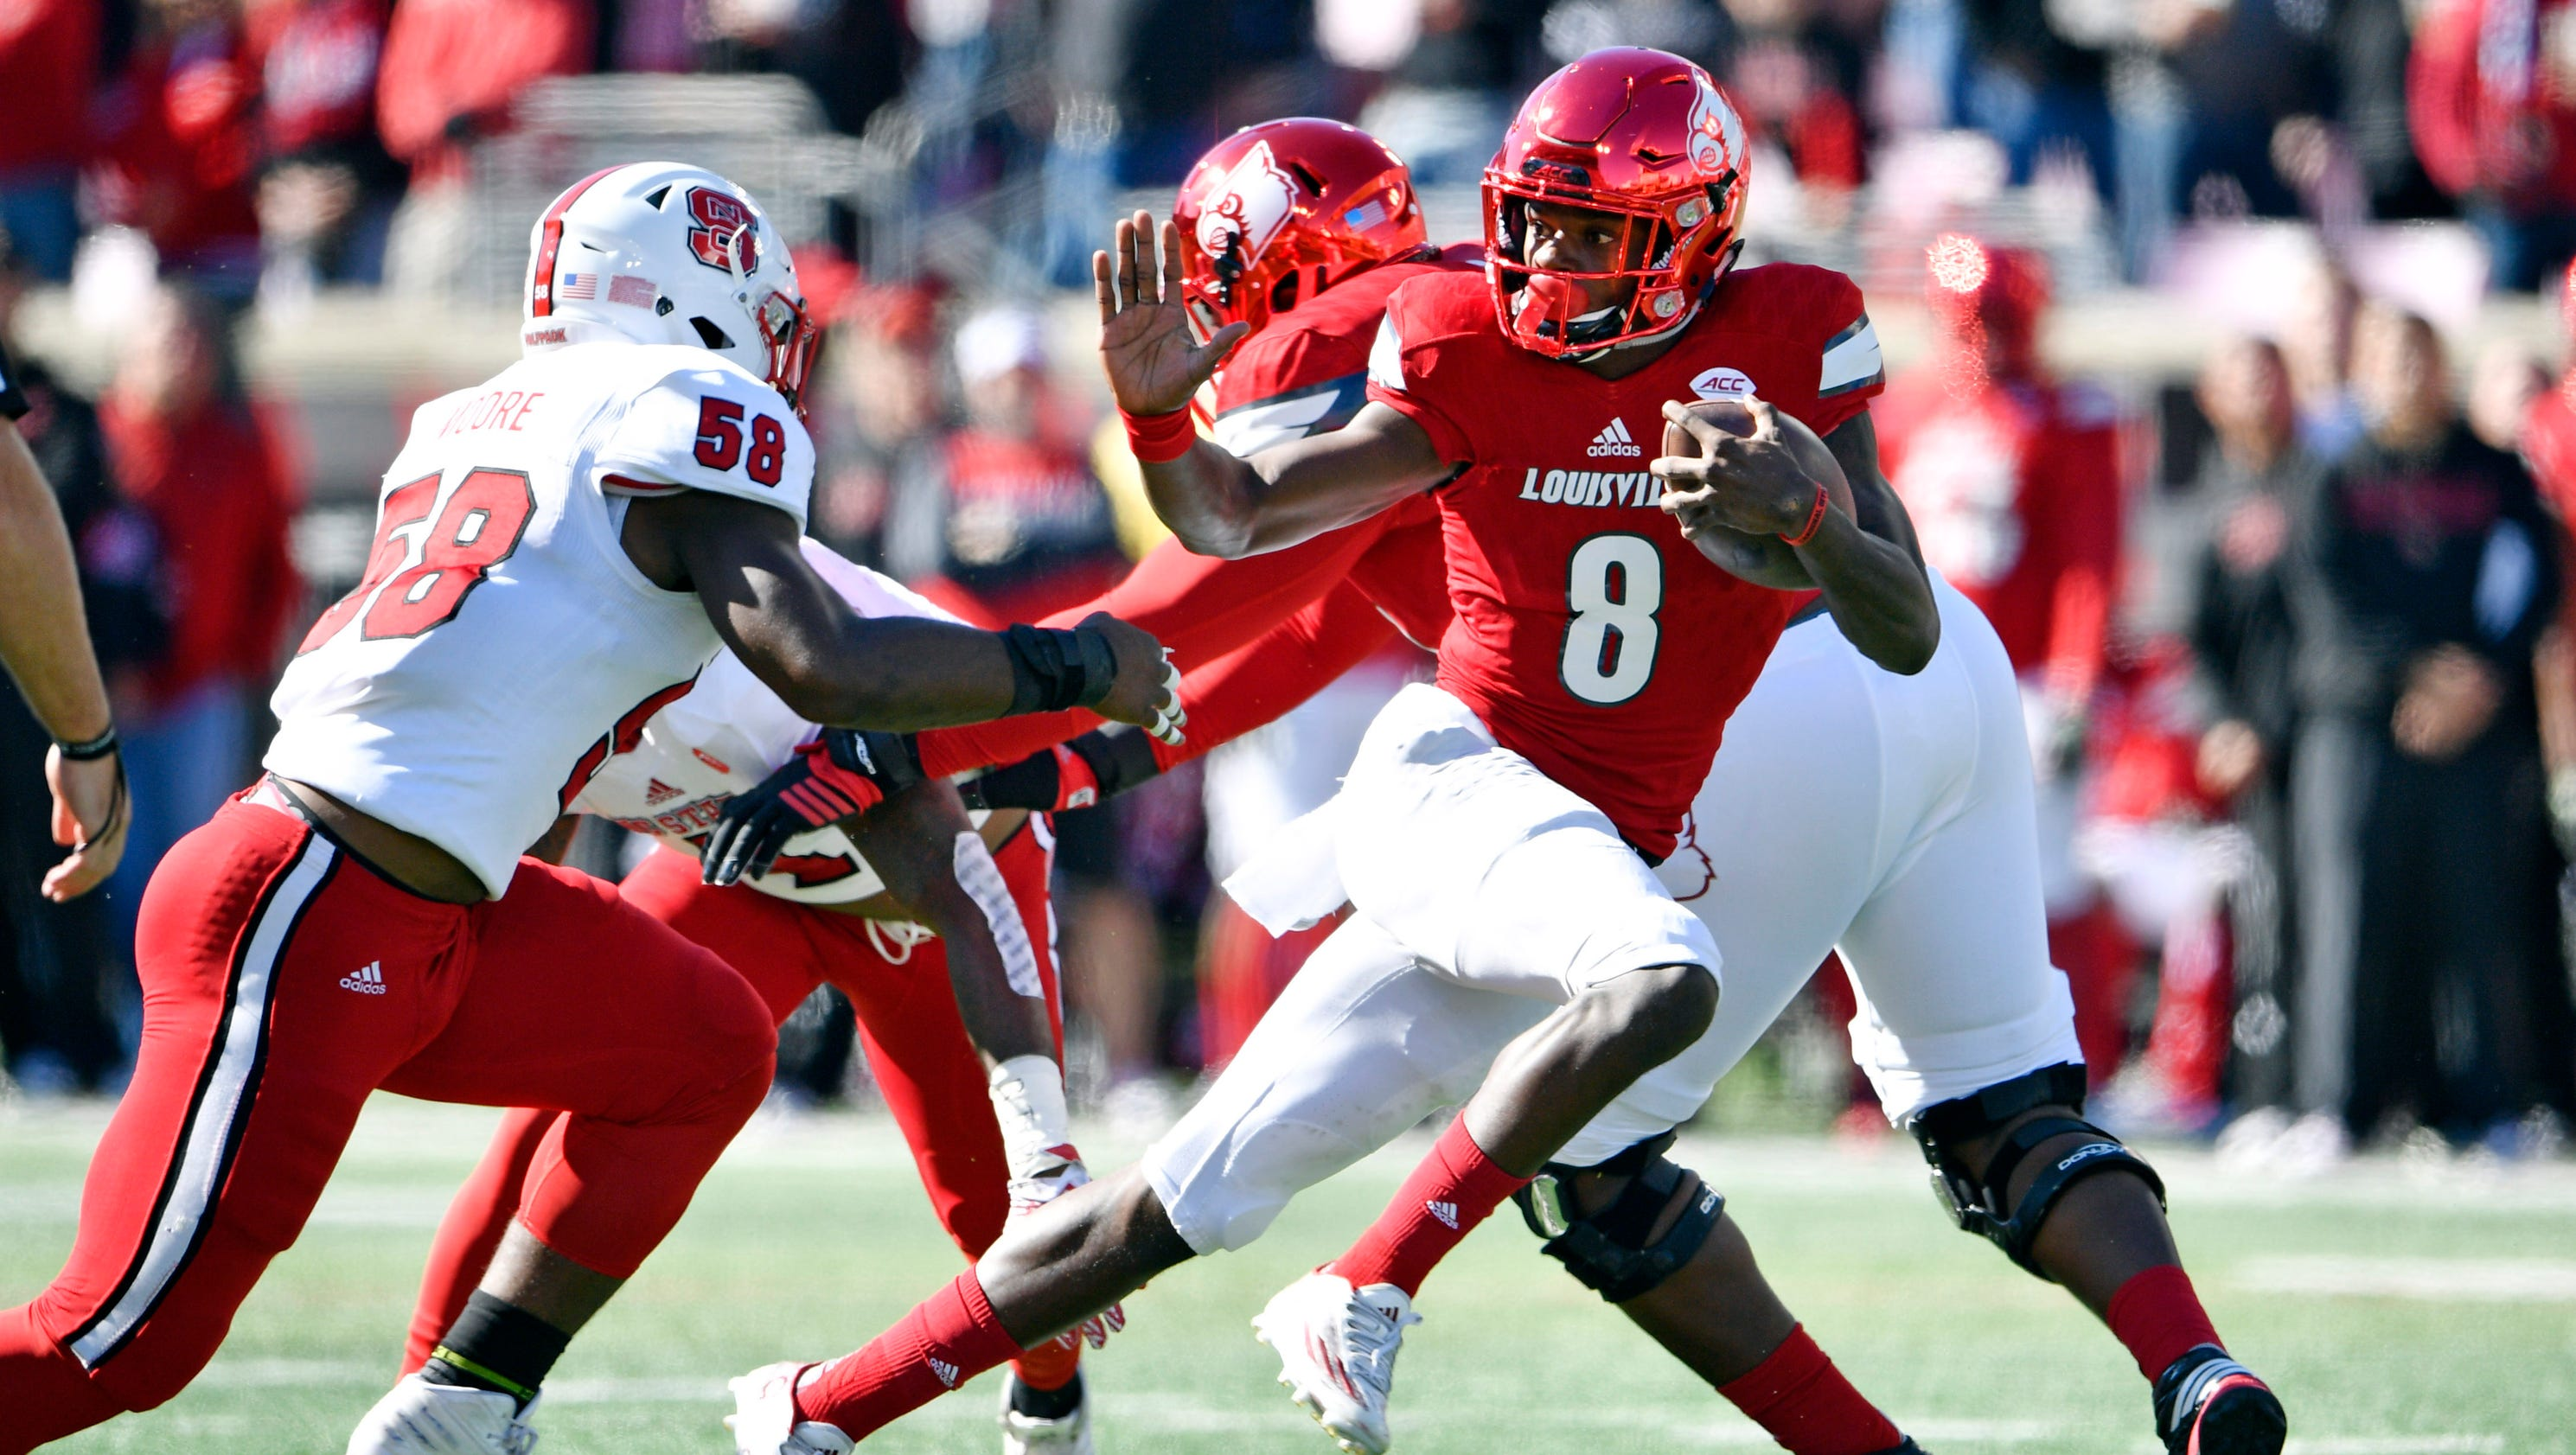 Heisman front-runner Lamar Jackson now has more TDs than most FBS teams